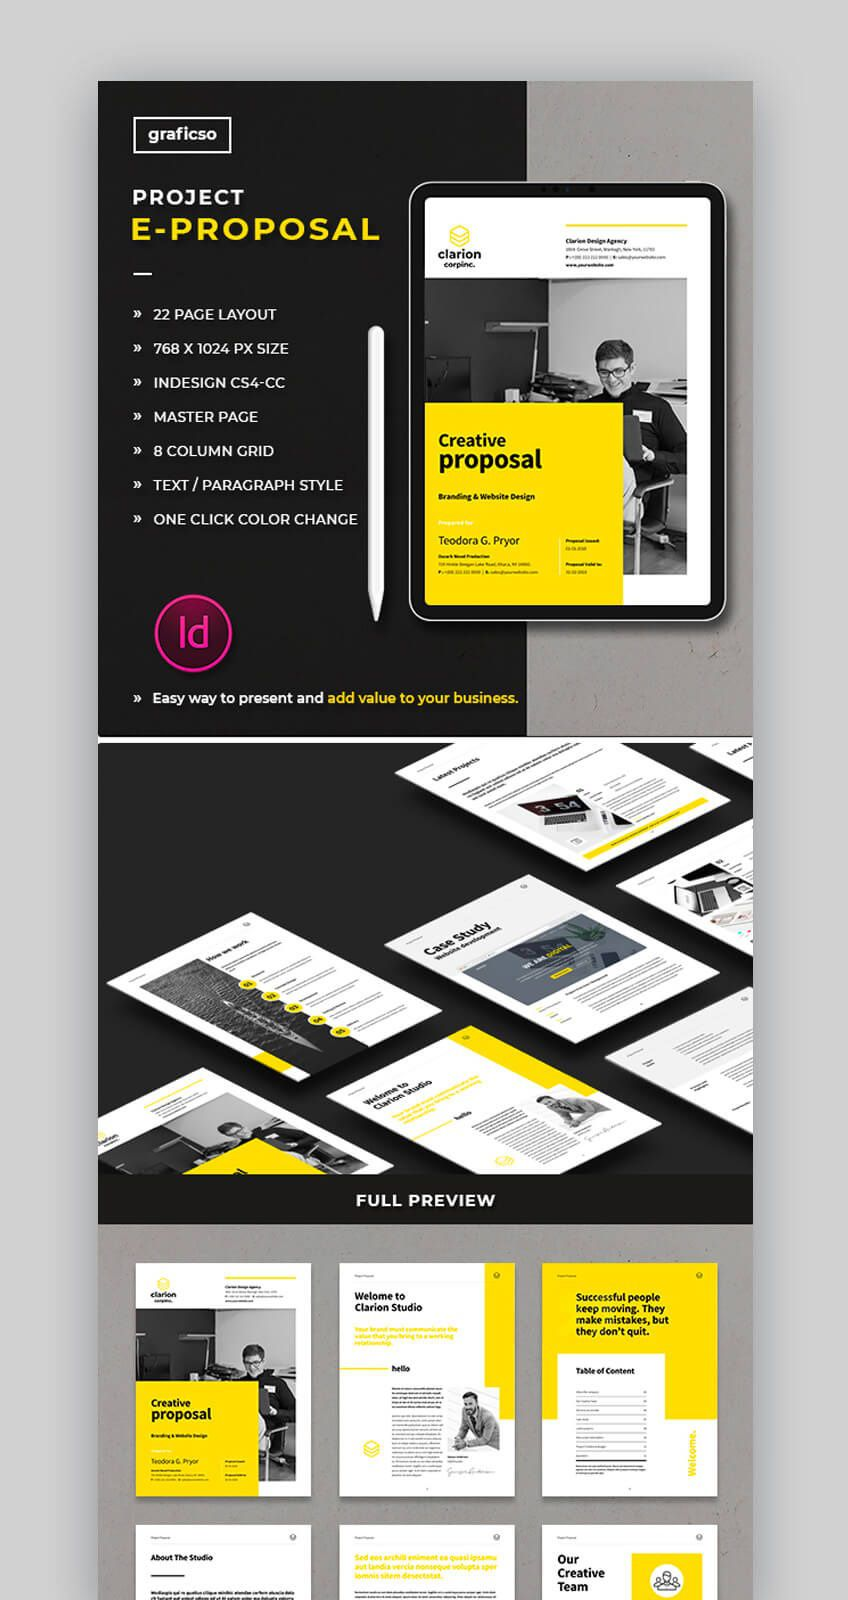 005 Marvelou Graphic Design Proposal Template Word High Def Full